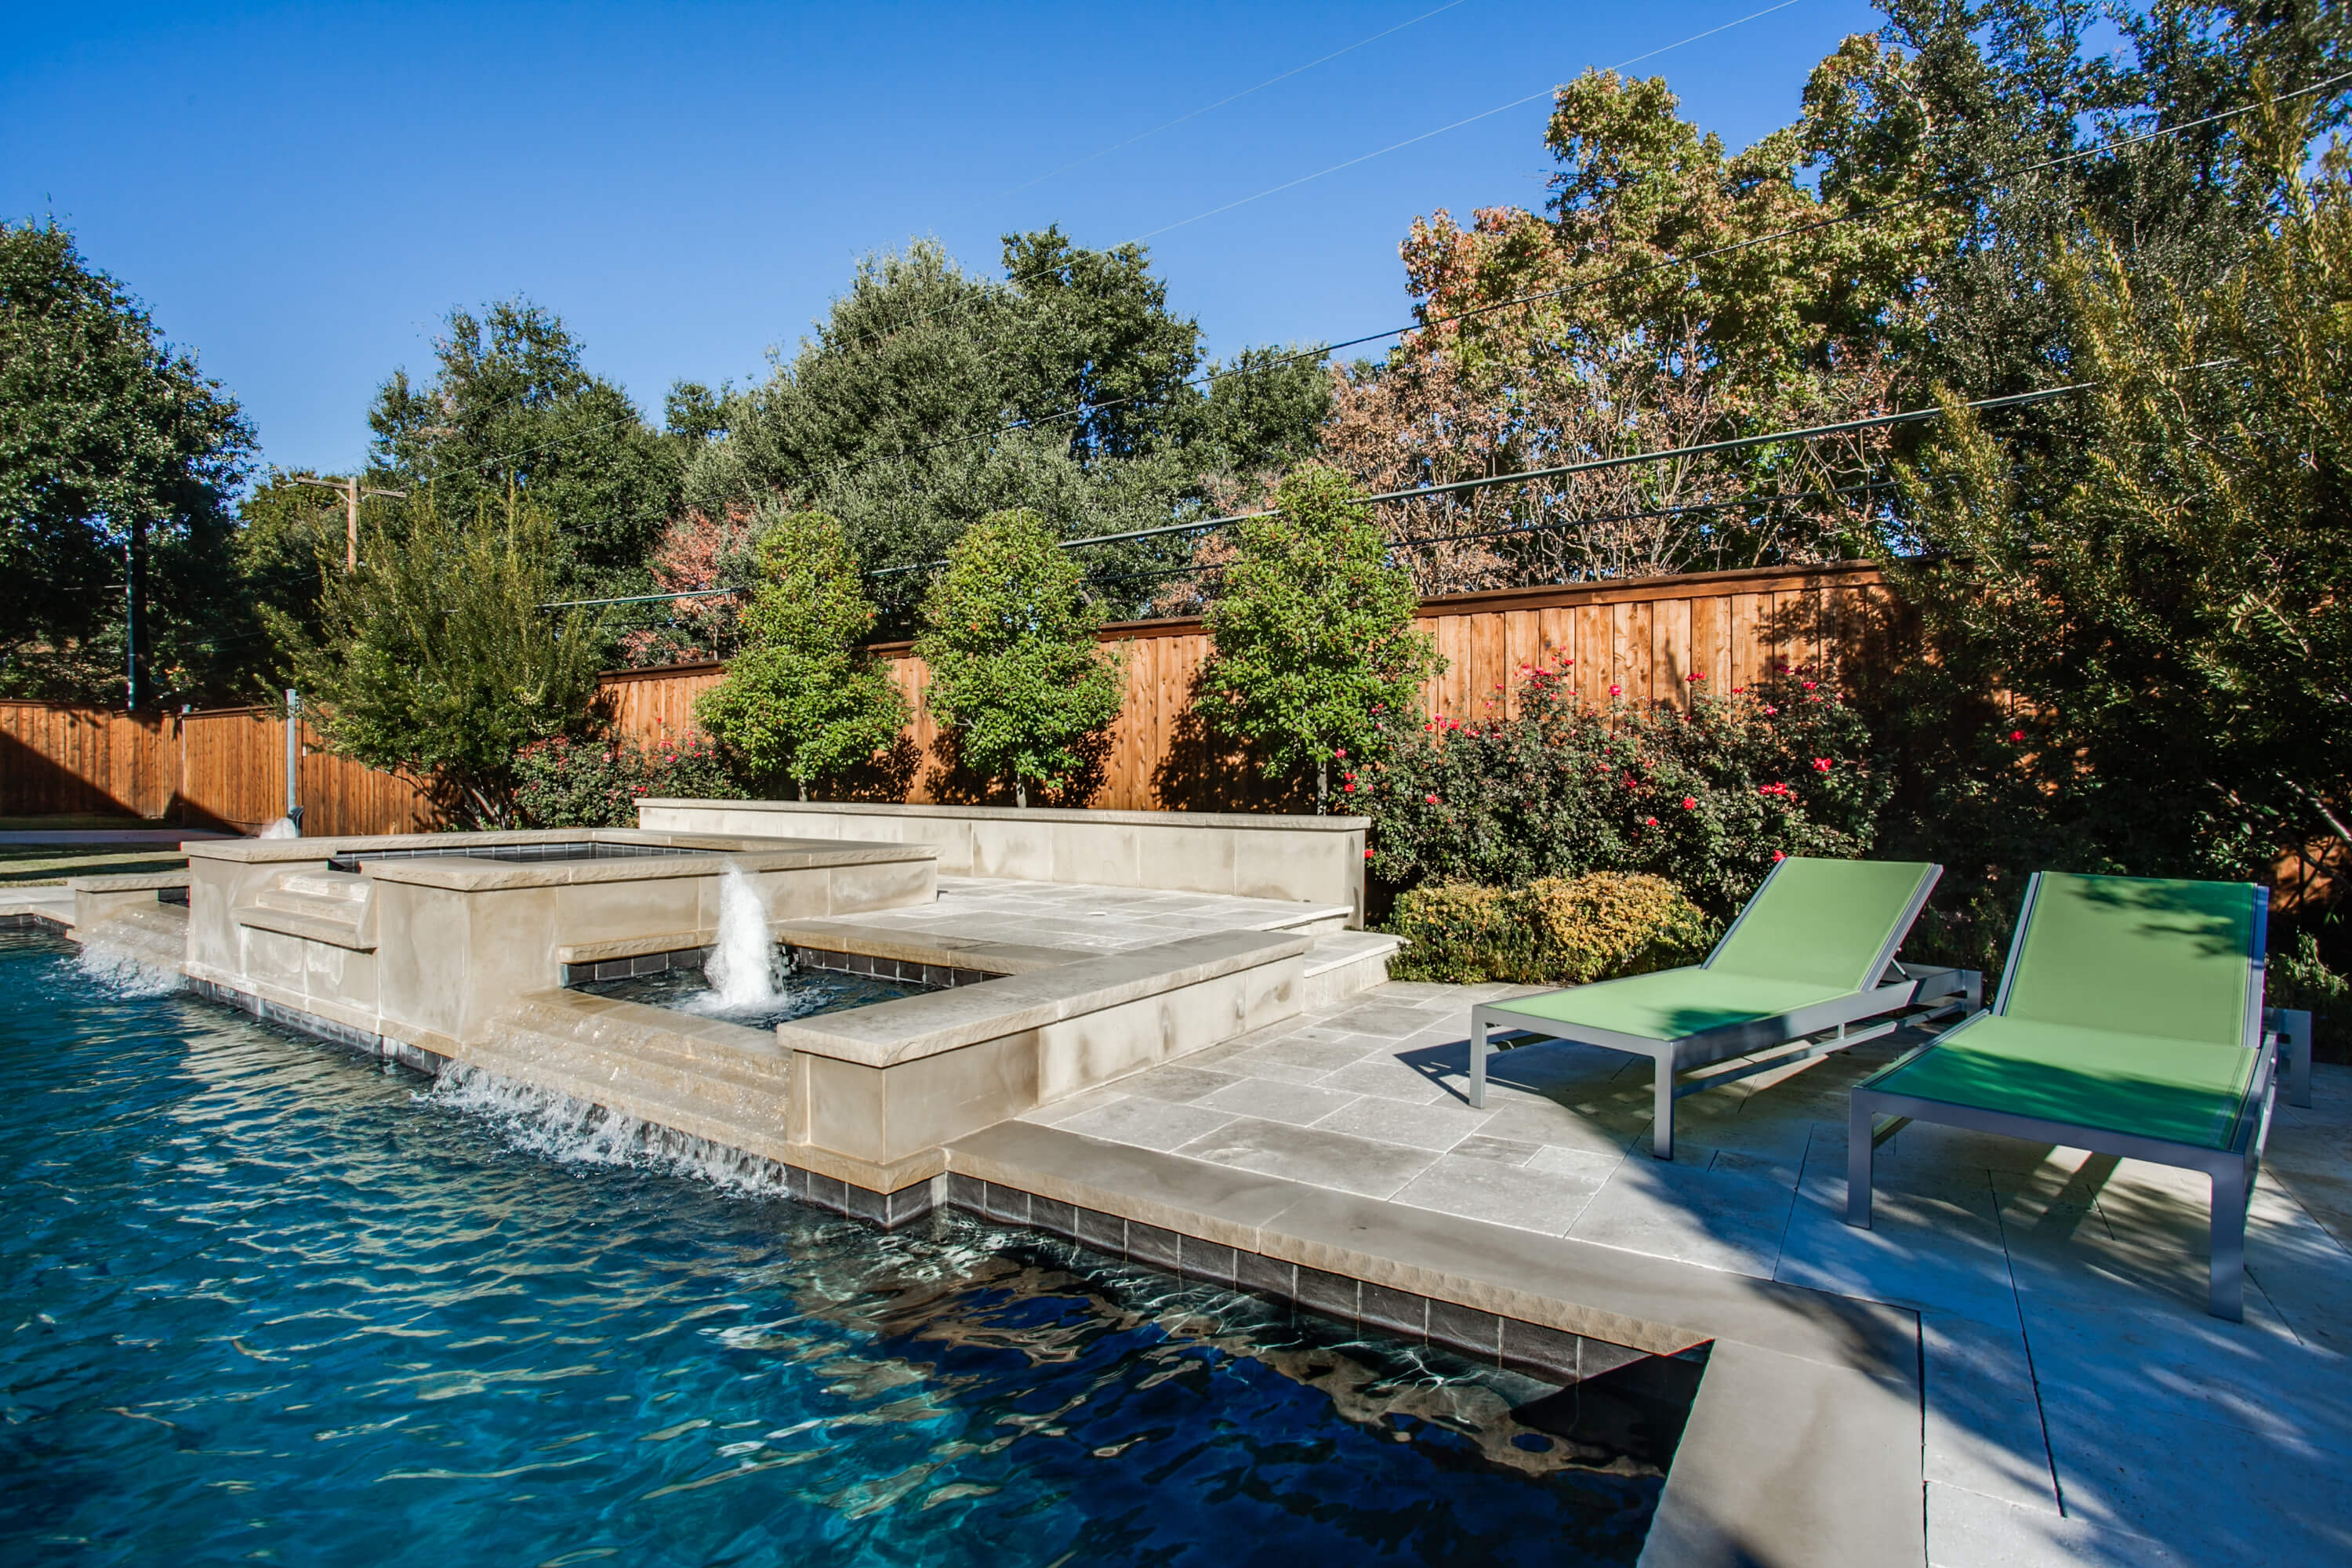 Swimming Pool Maintenance Tips for Opening Your Pool for Spring